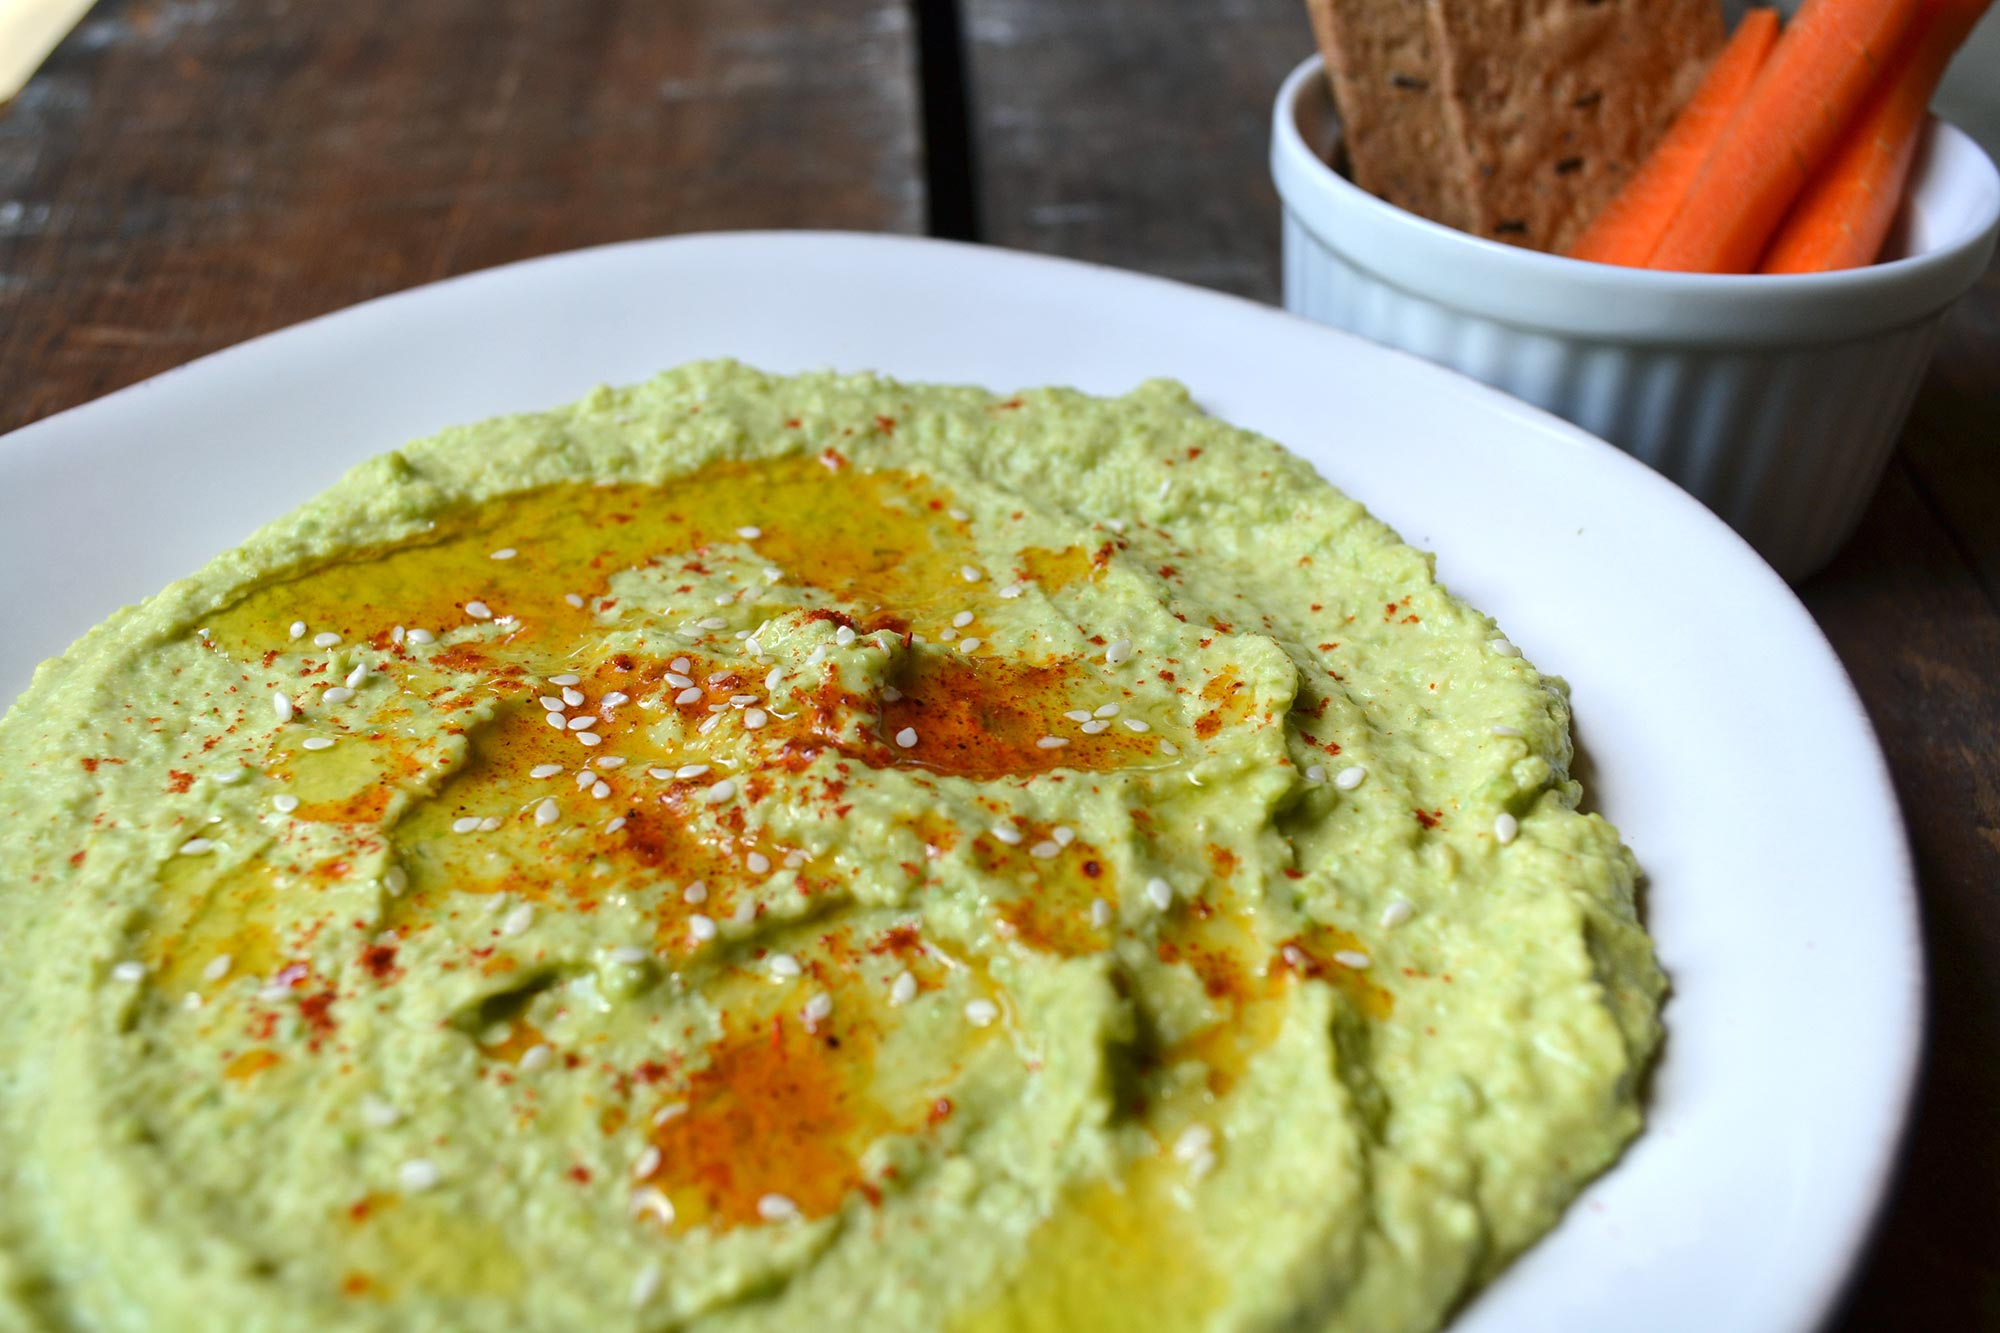 Fresh Garbanzo Bean Hummus